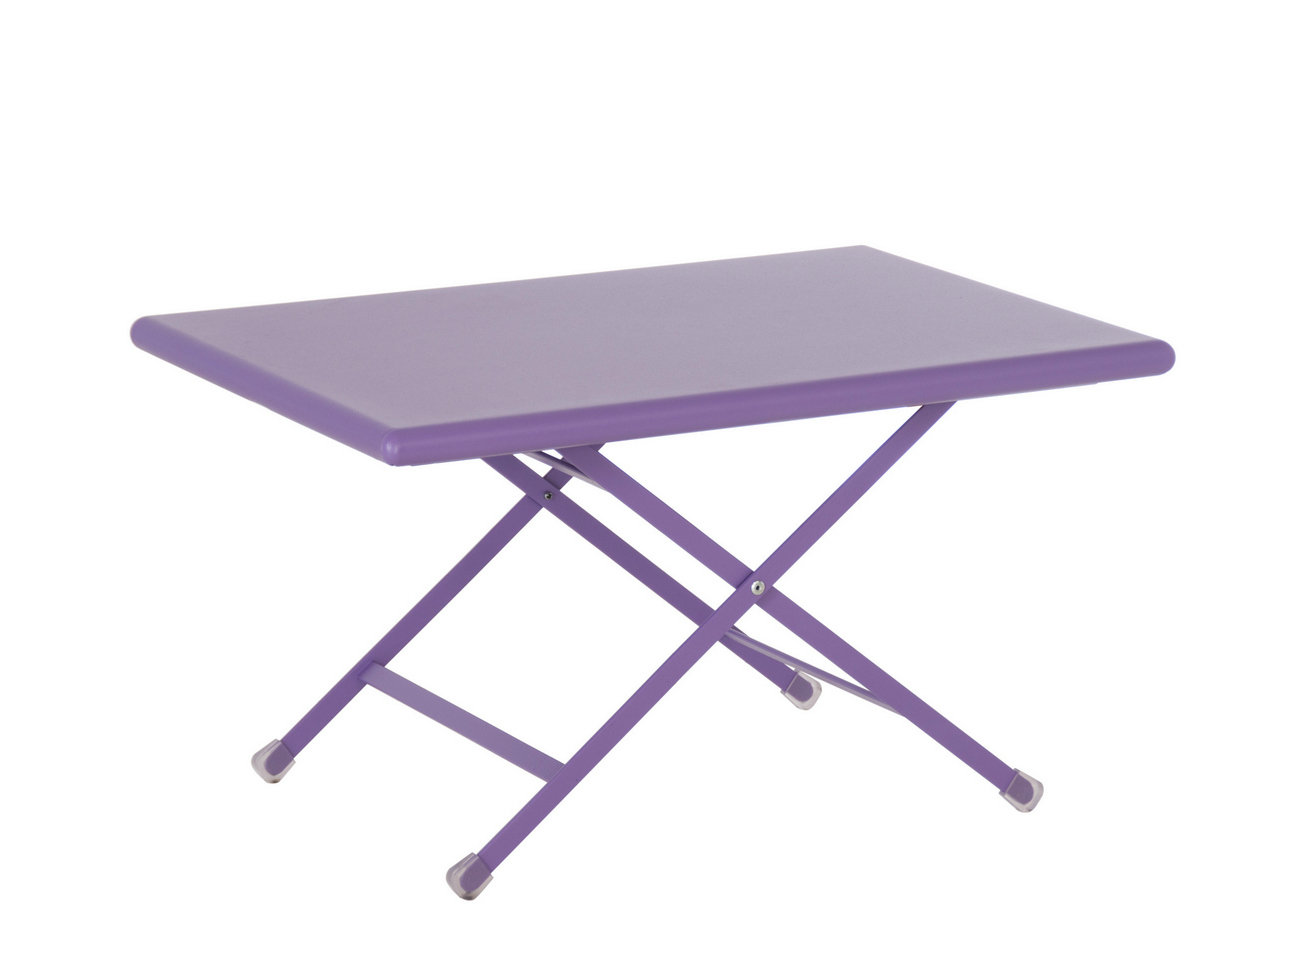 Table de jardin design leroy merlin - Leroy merlin table jardin ...